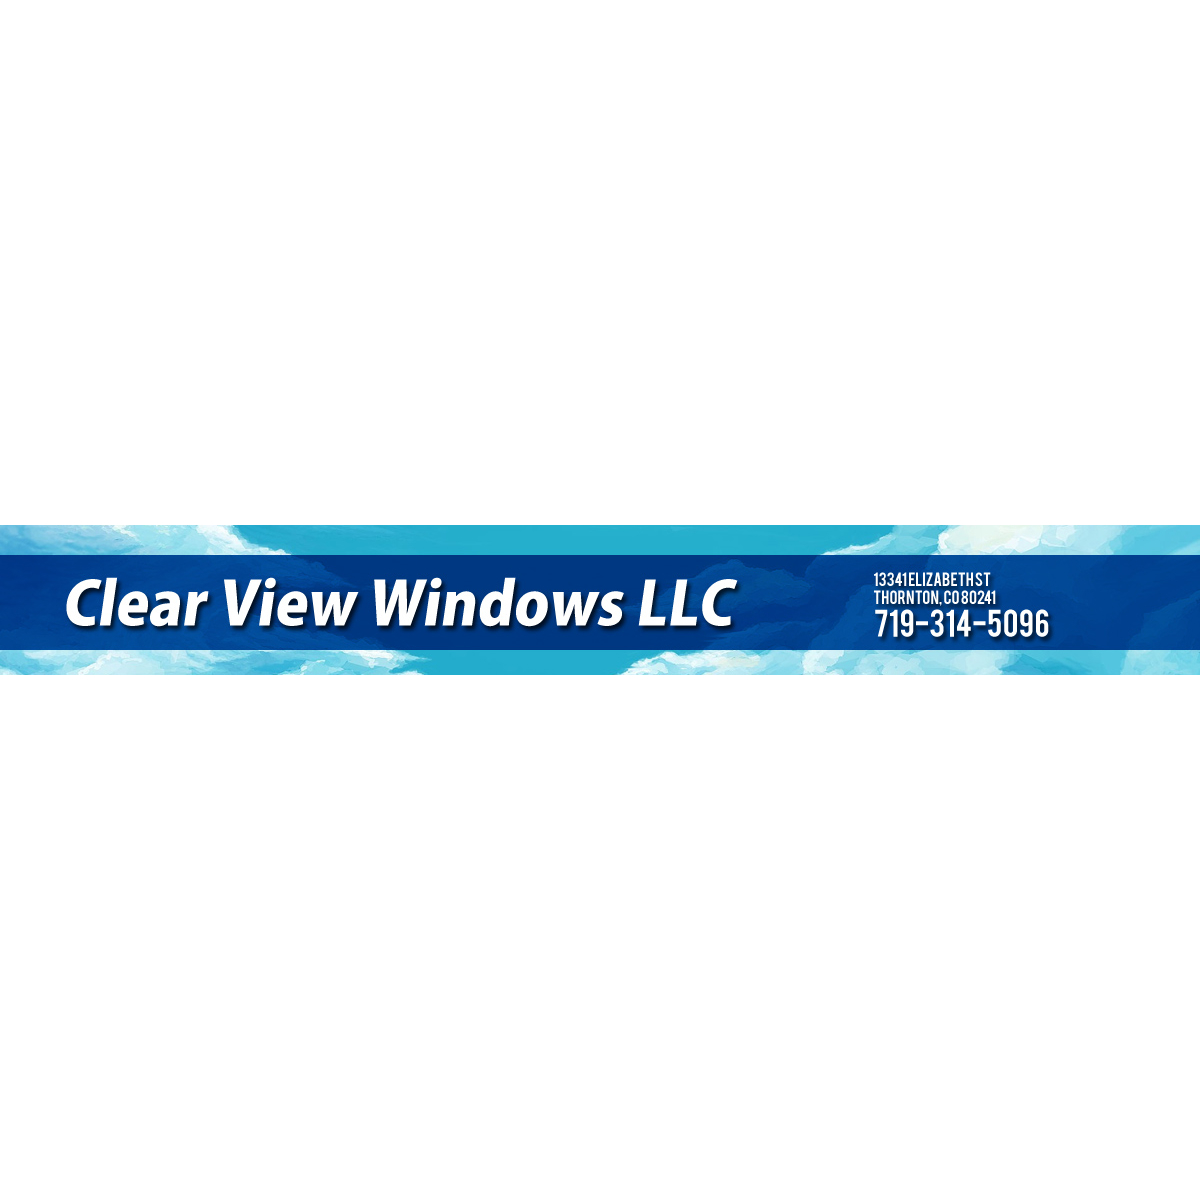 Clear View Windows LLC